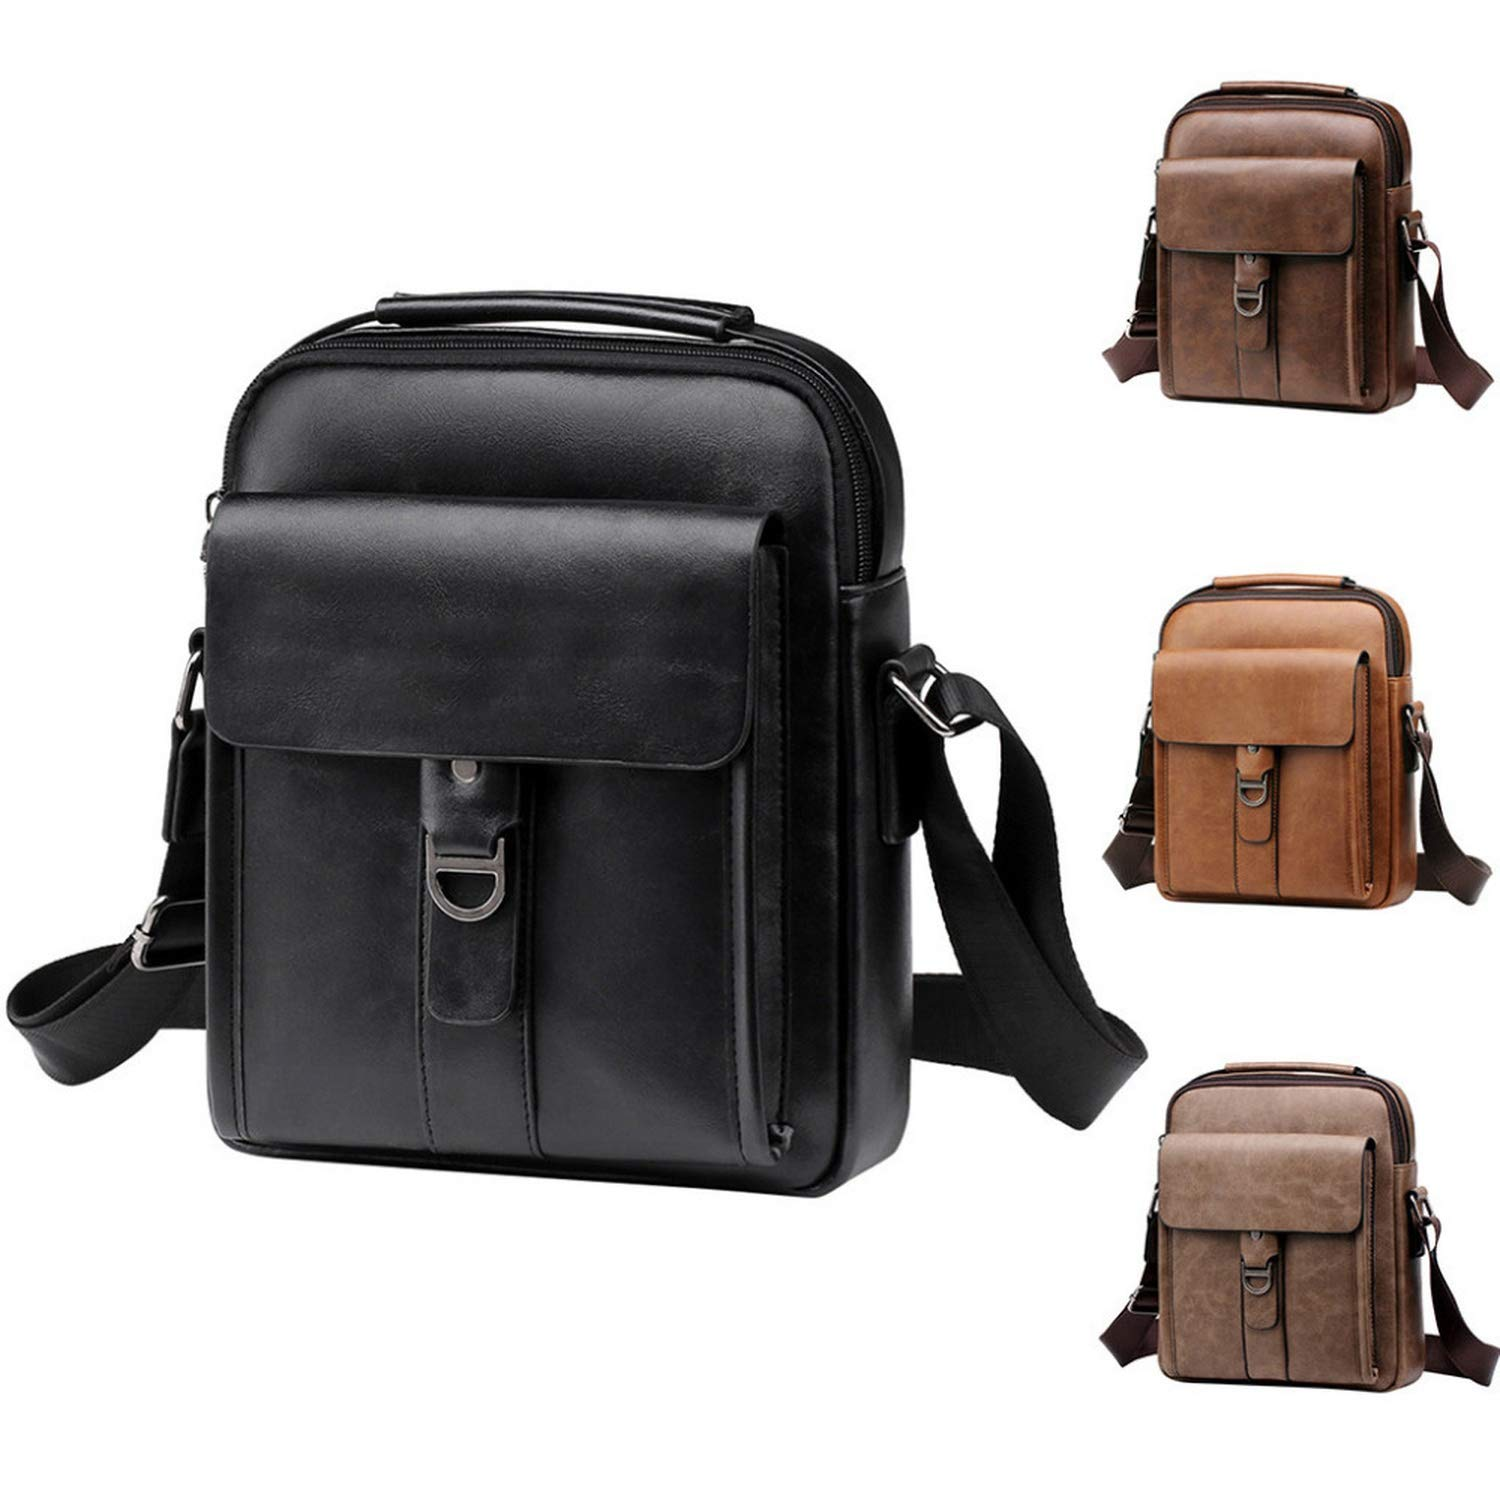 Nianchu Mens Gentleman Business Shoulder Bag Top Quality Male Messenger Bags Solid Color Crossbody Bags Casual Handbag